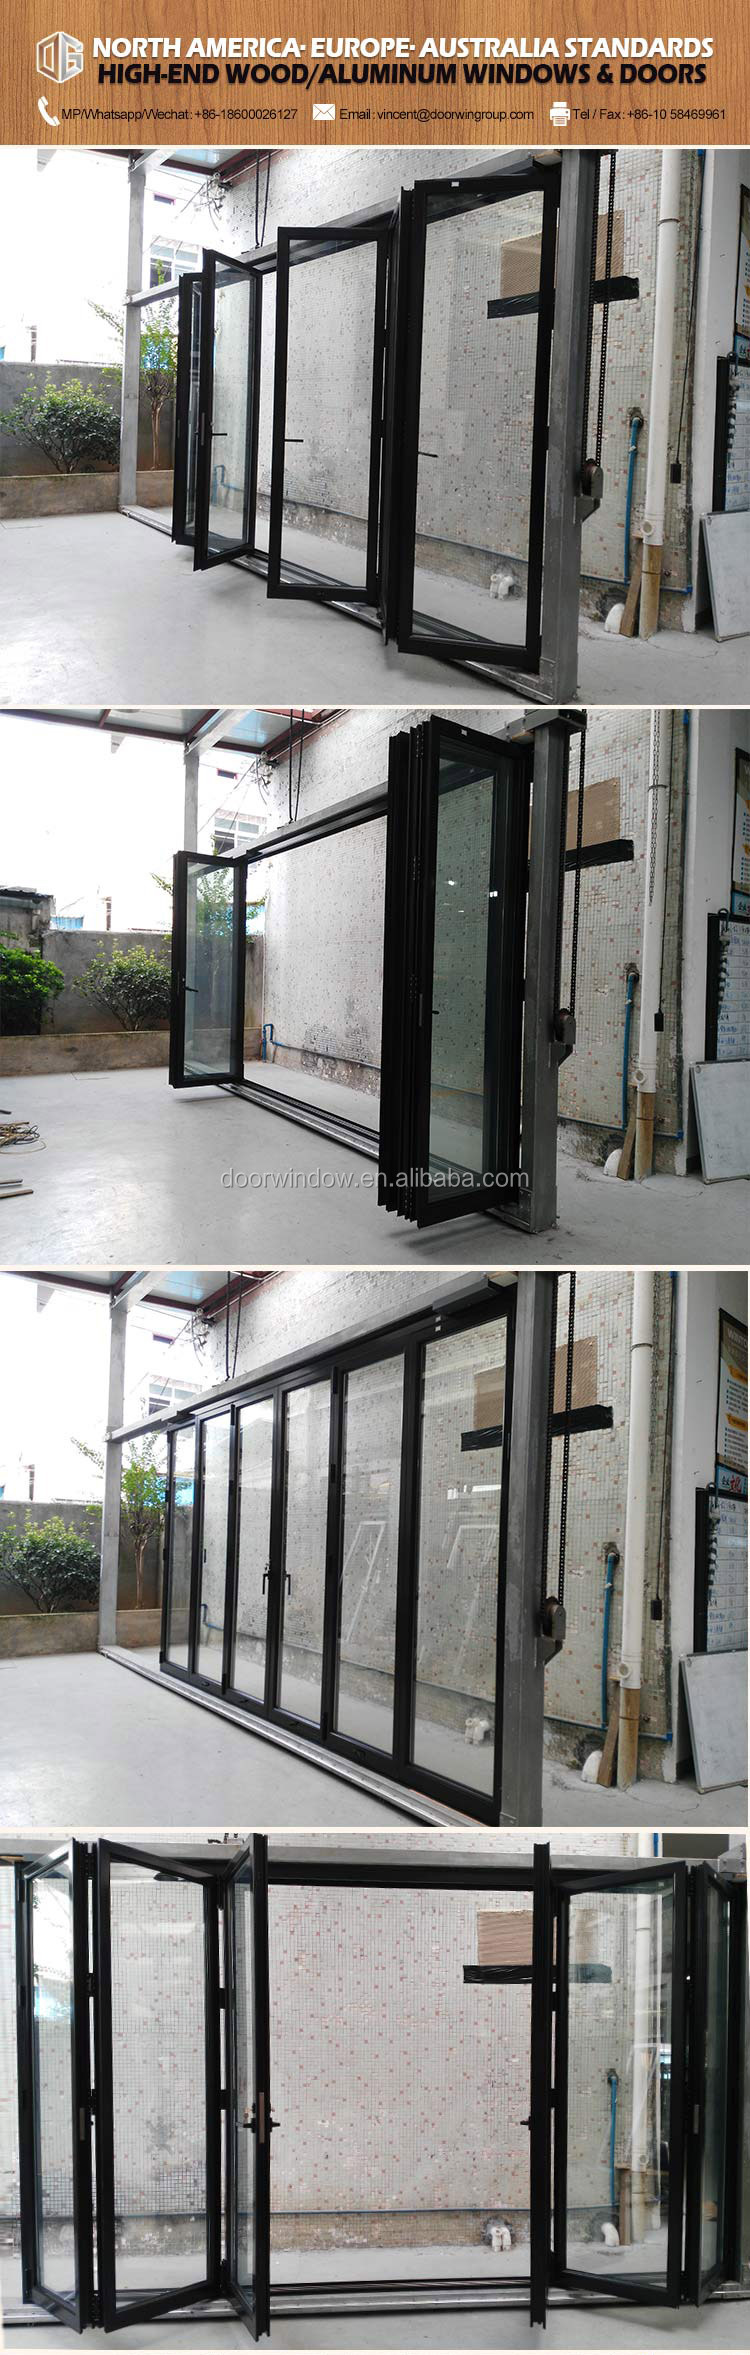 Thermal break aluminum 8 panels lowes bi fold outdoor bi folding door Bifold folding foldable bifolding accordion windows